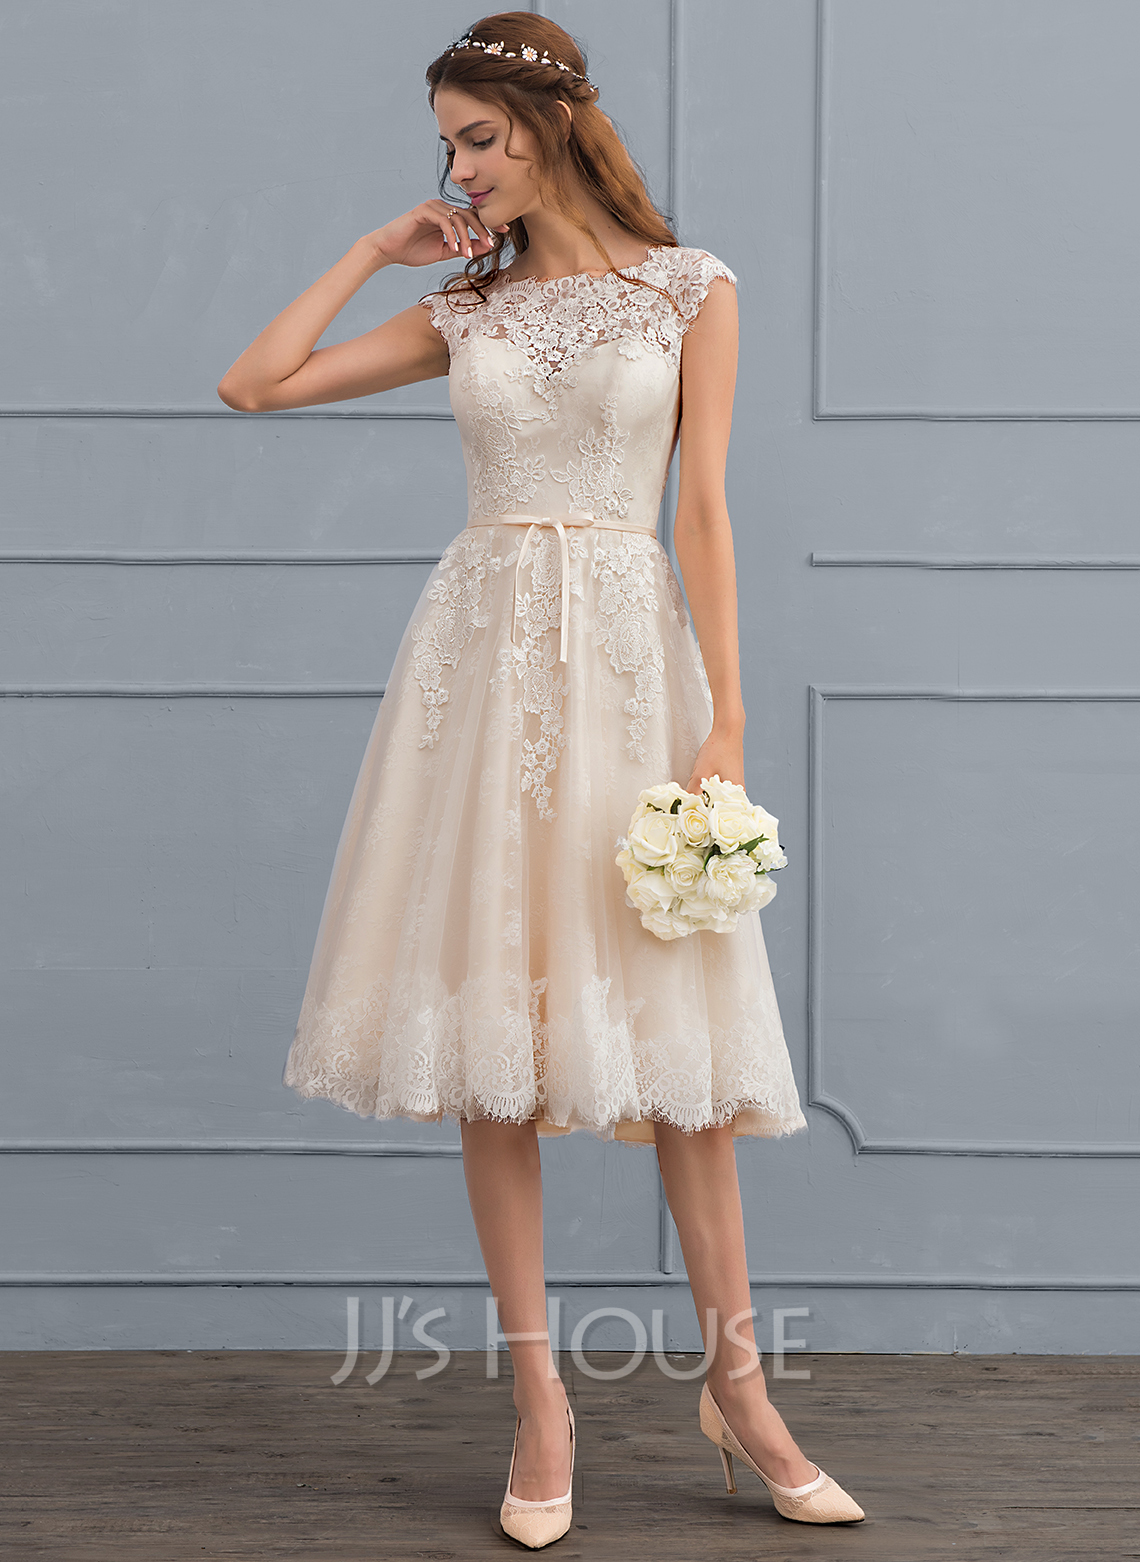 Casual Wedding Dresses For Mature Bride | JJ\'sHouse